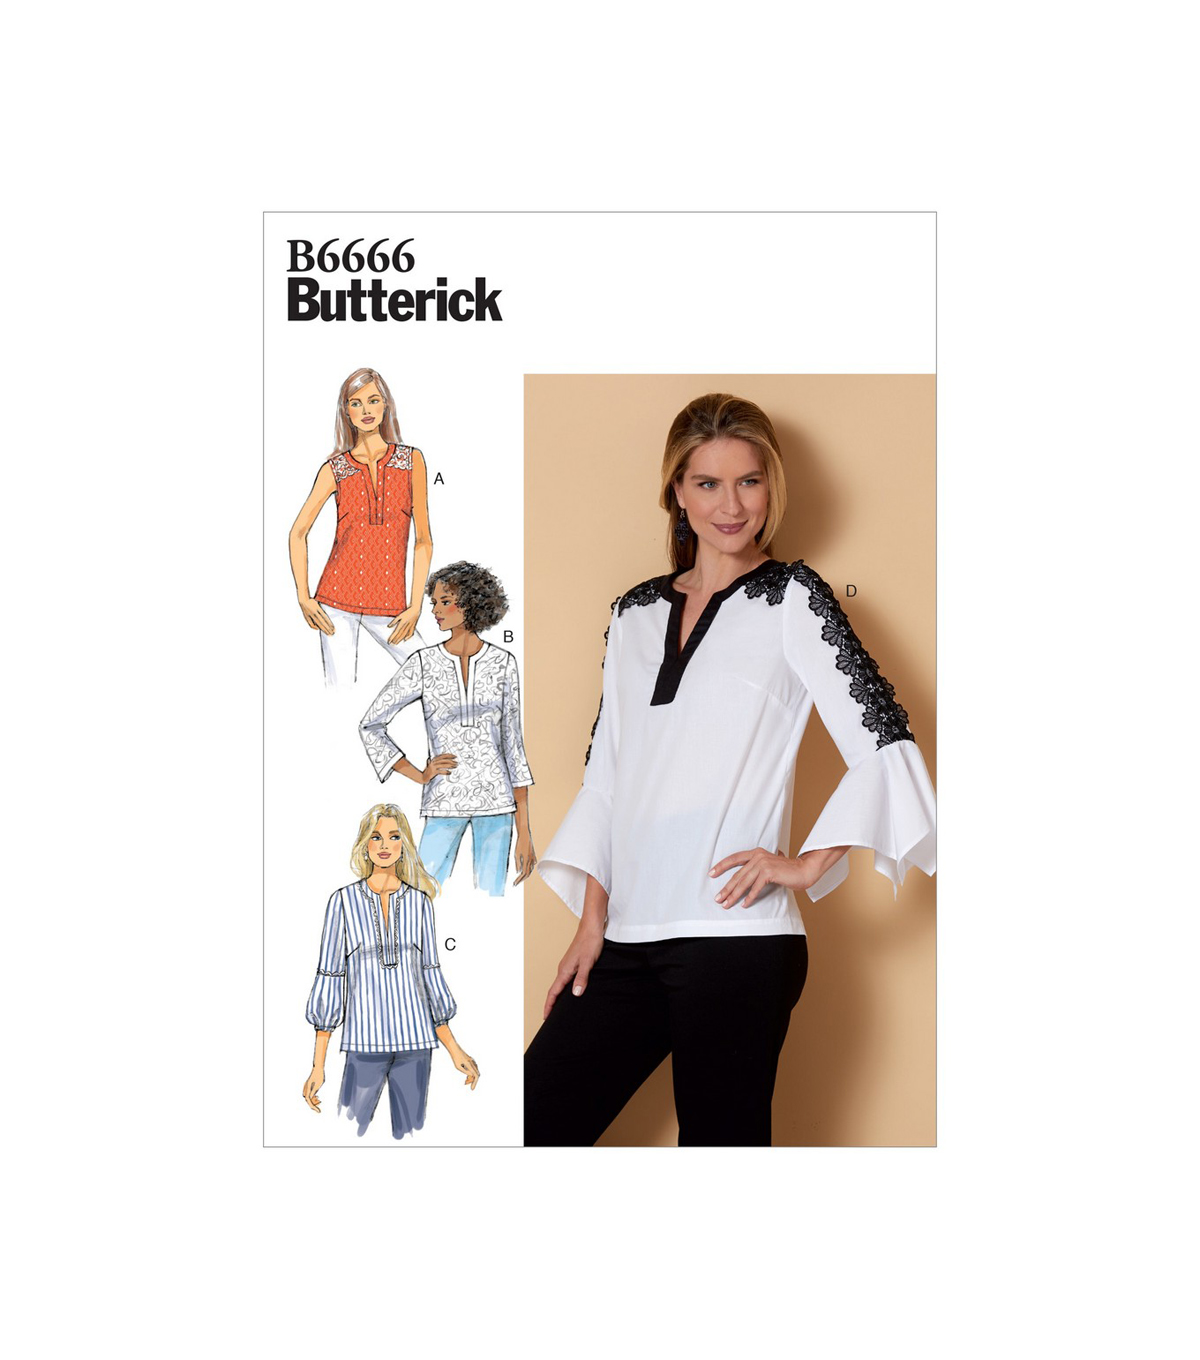 Butterick Pattern B6666 Misses\u0027 Top-Size XS-S-M